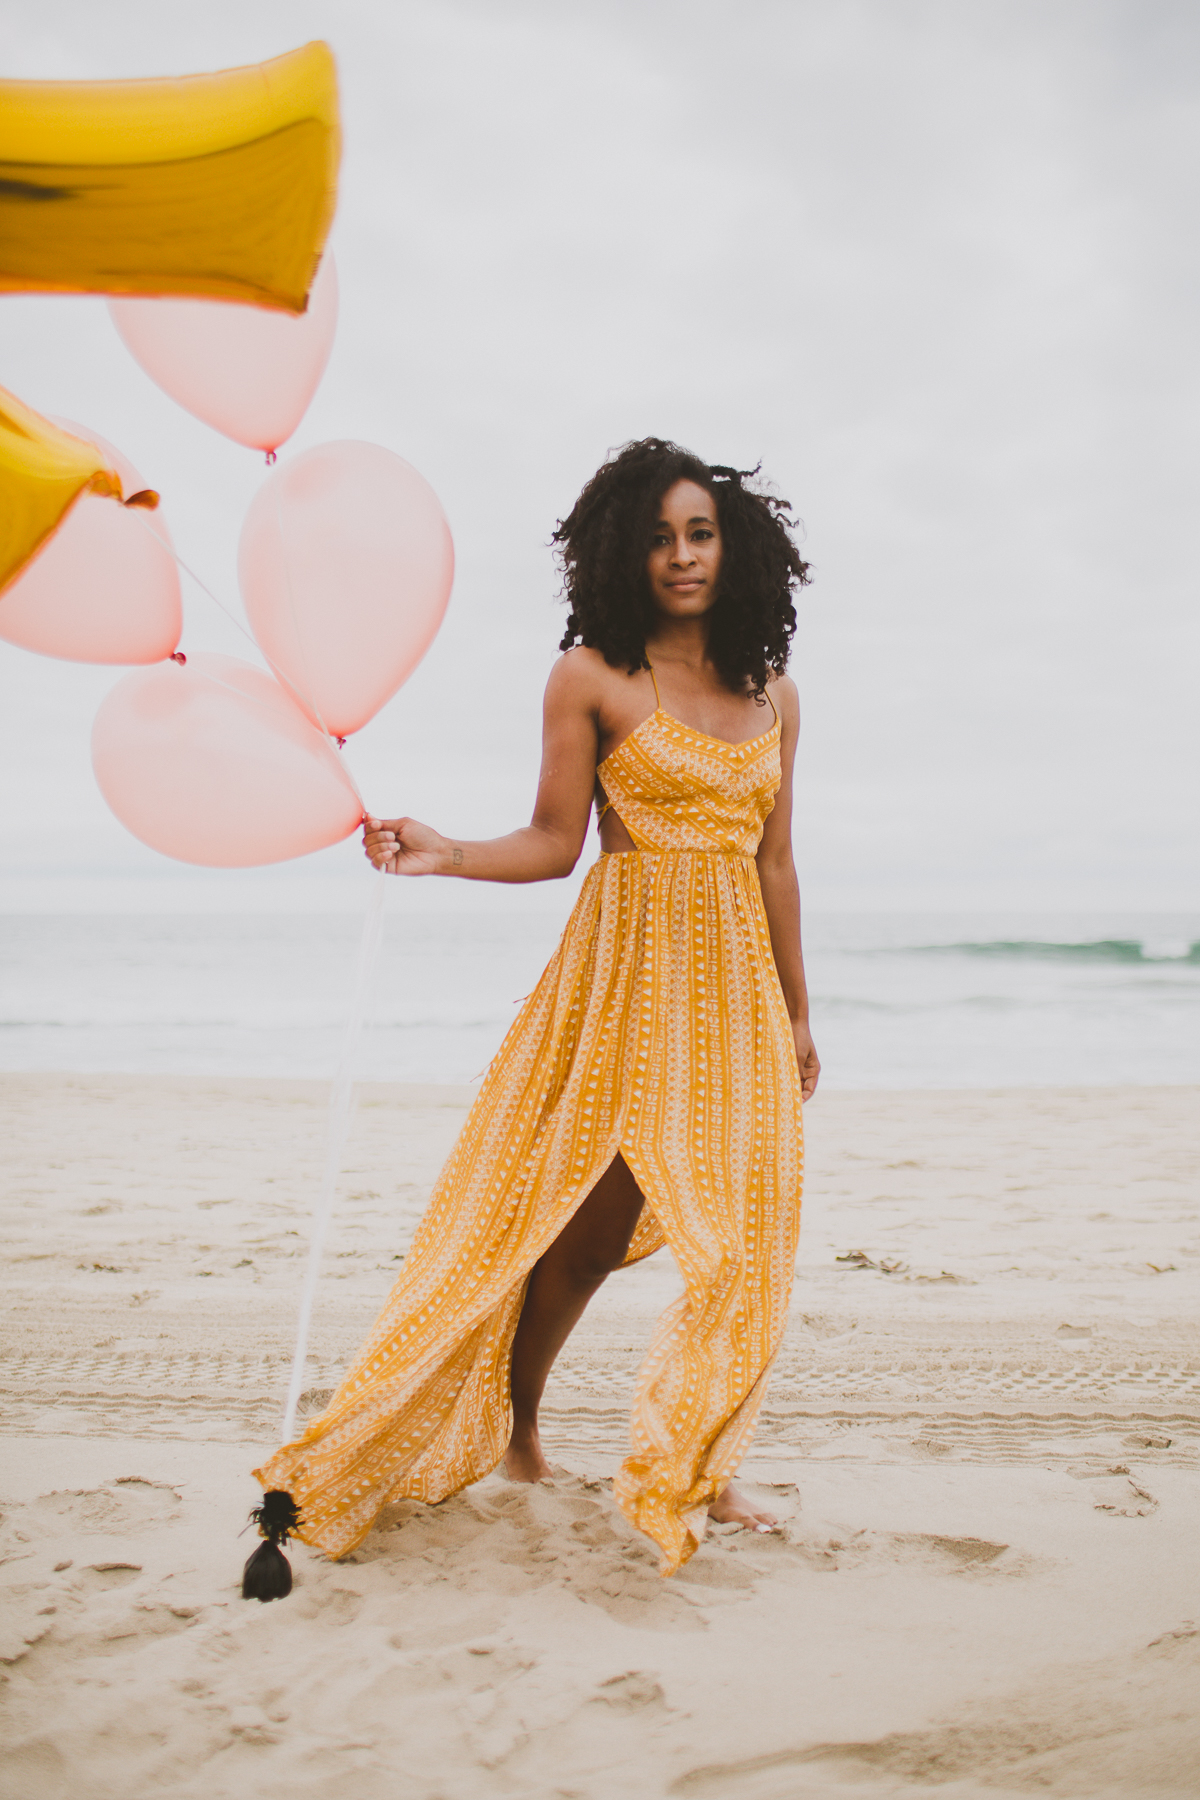 manhattan-beach-yellow-maxi-birthday-shoot-kelley-raye-los-angeles-atlanta-branding-photographer-5.jpg